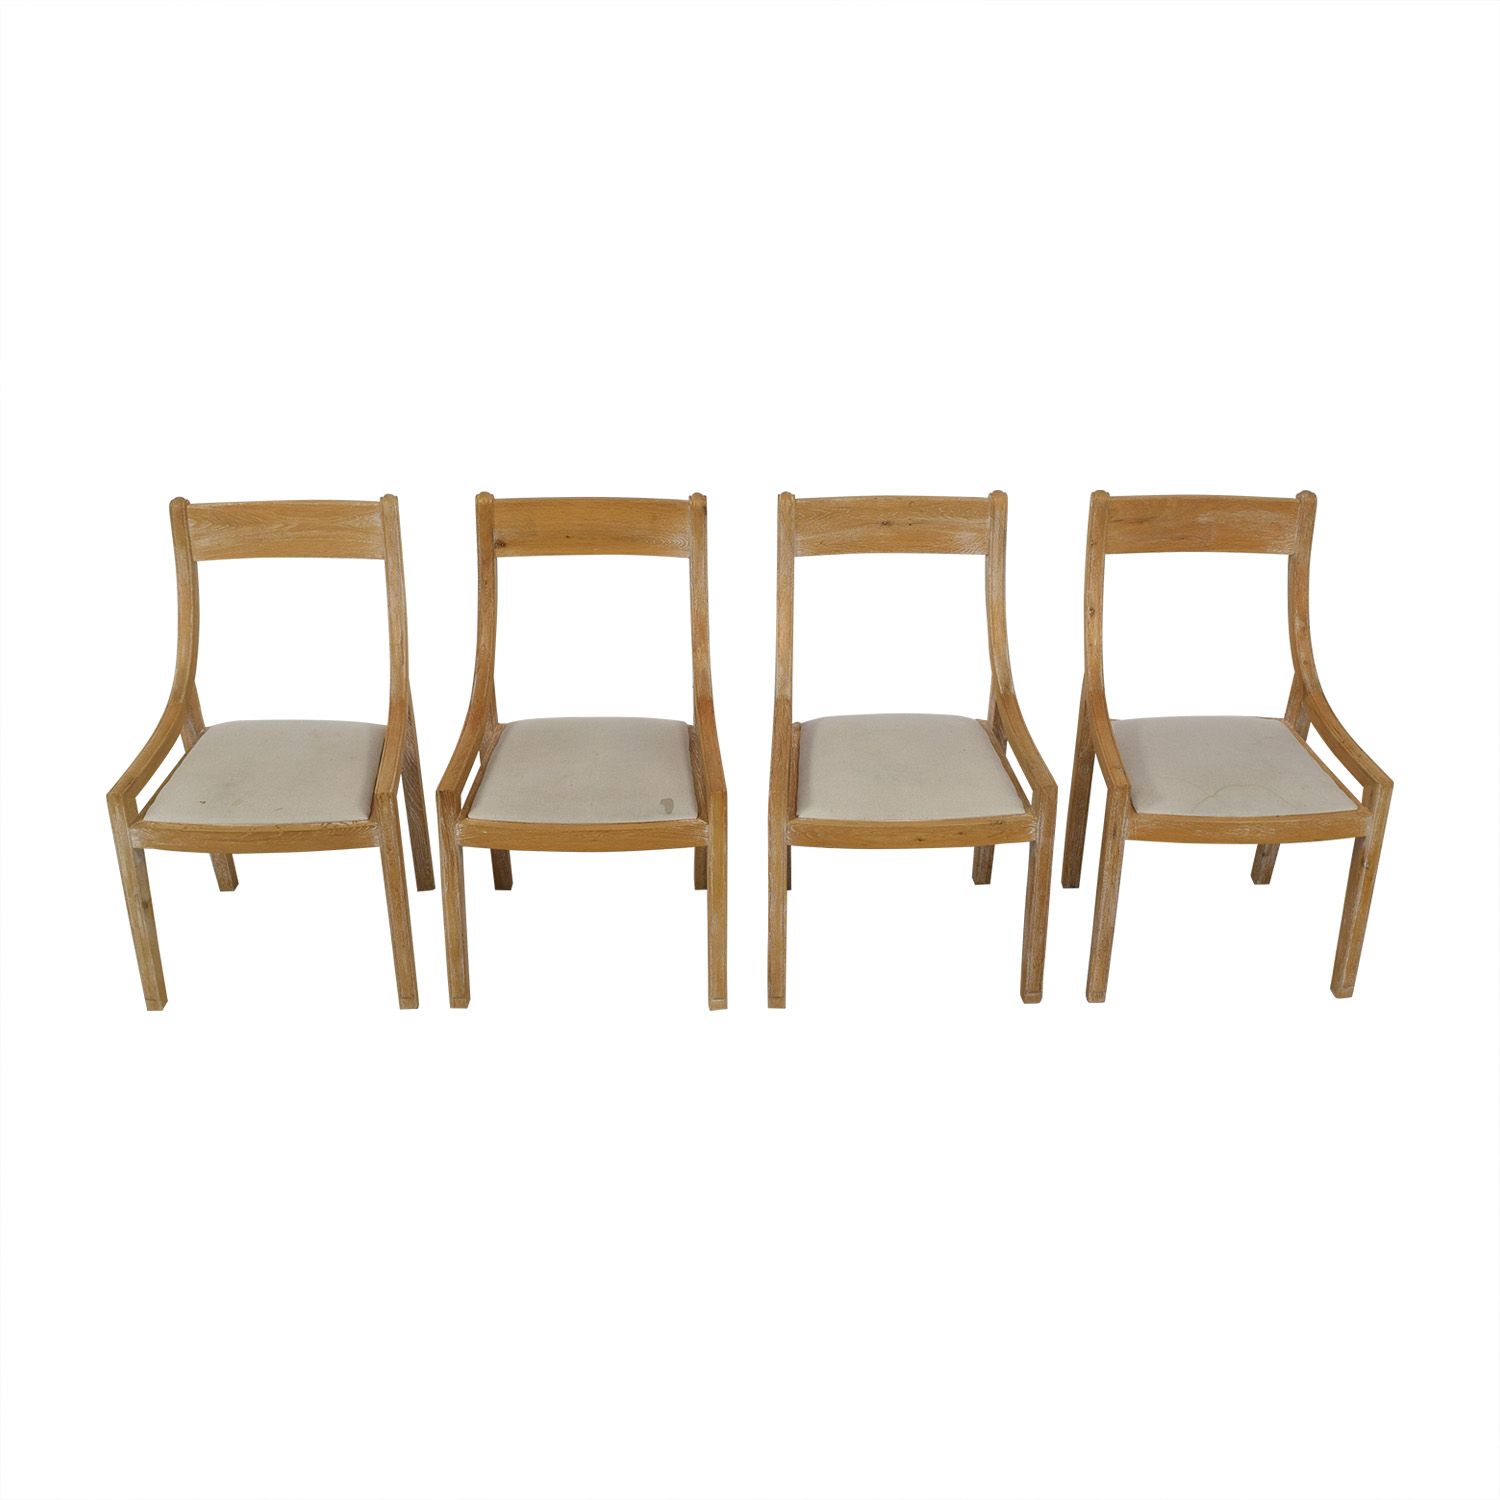 Birch Lane Birch Lane Solid Wood Dining Chairs coupon